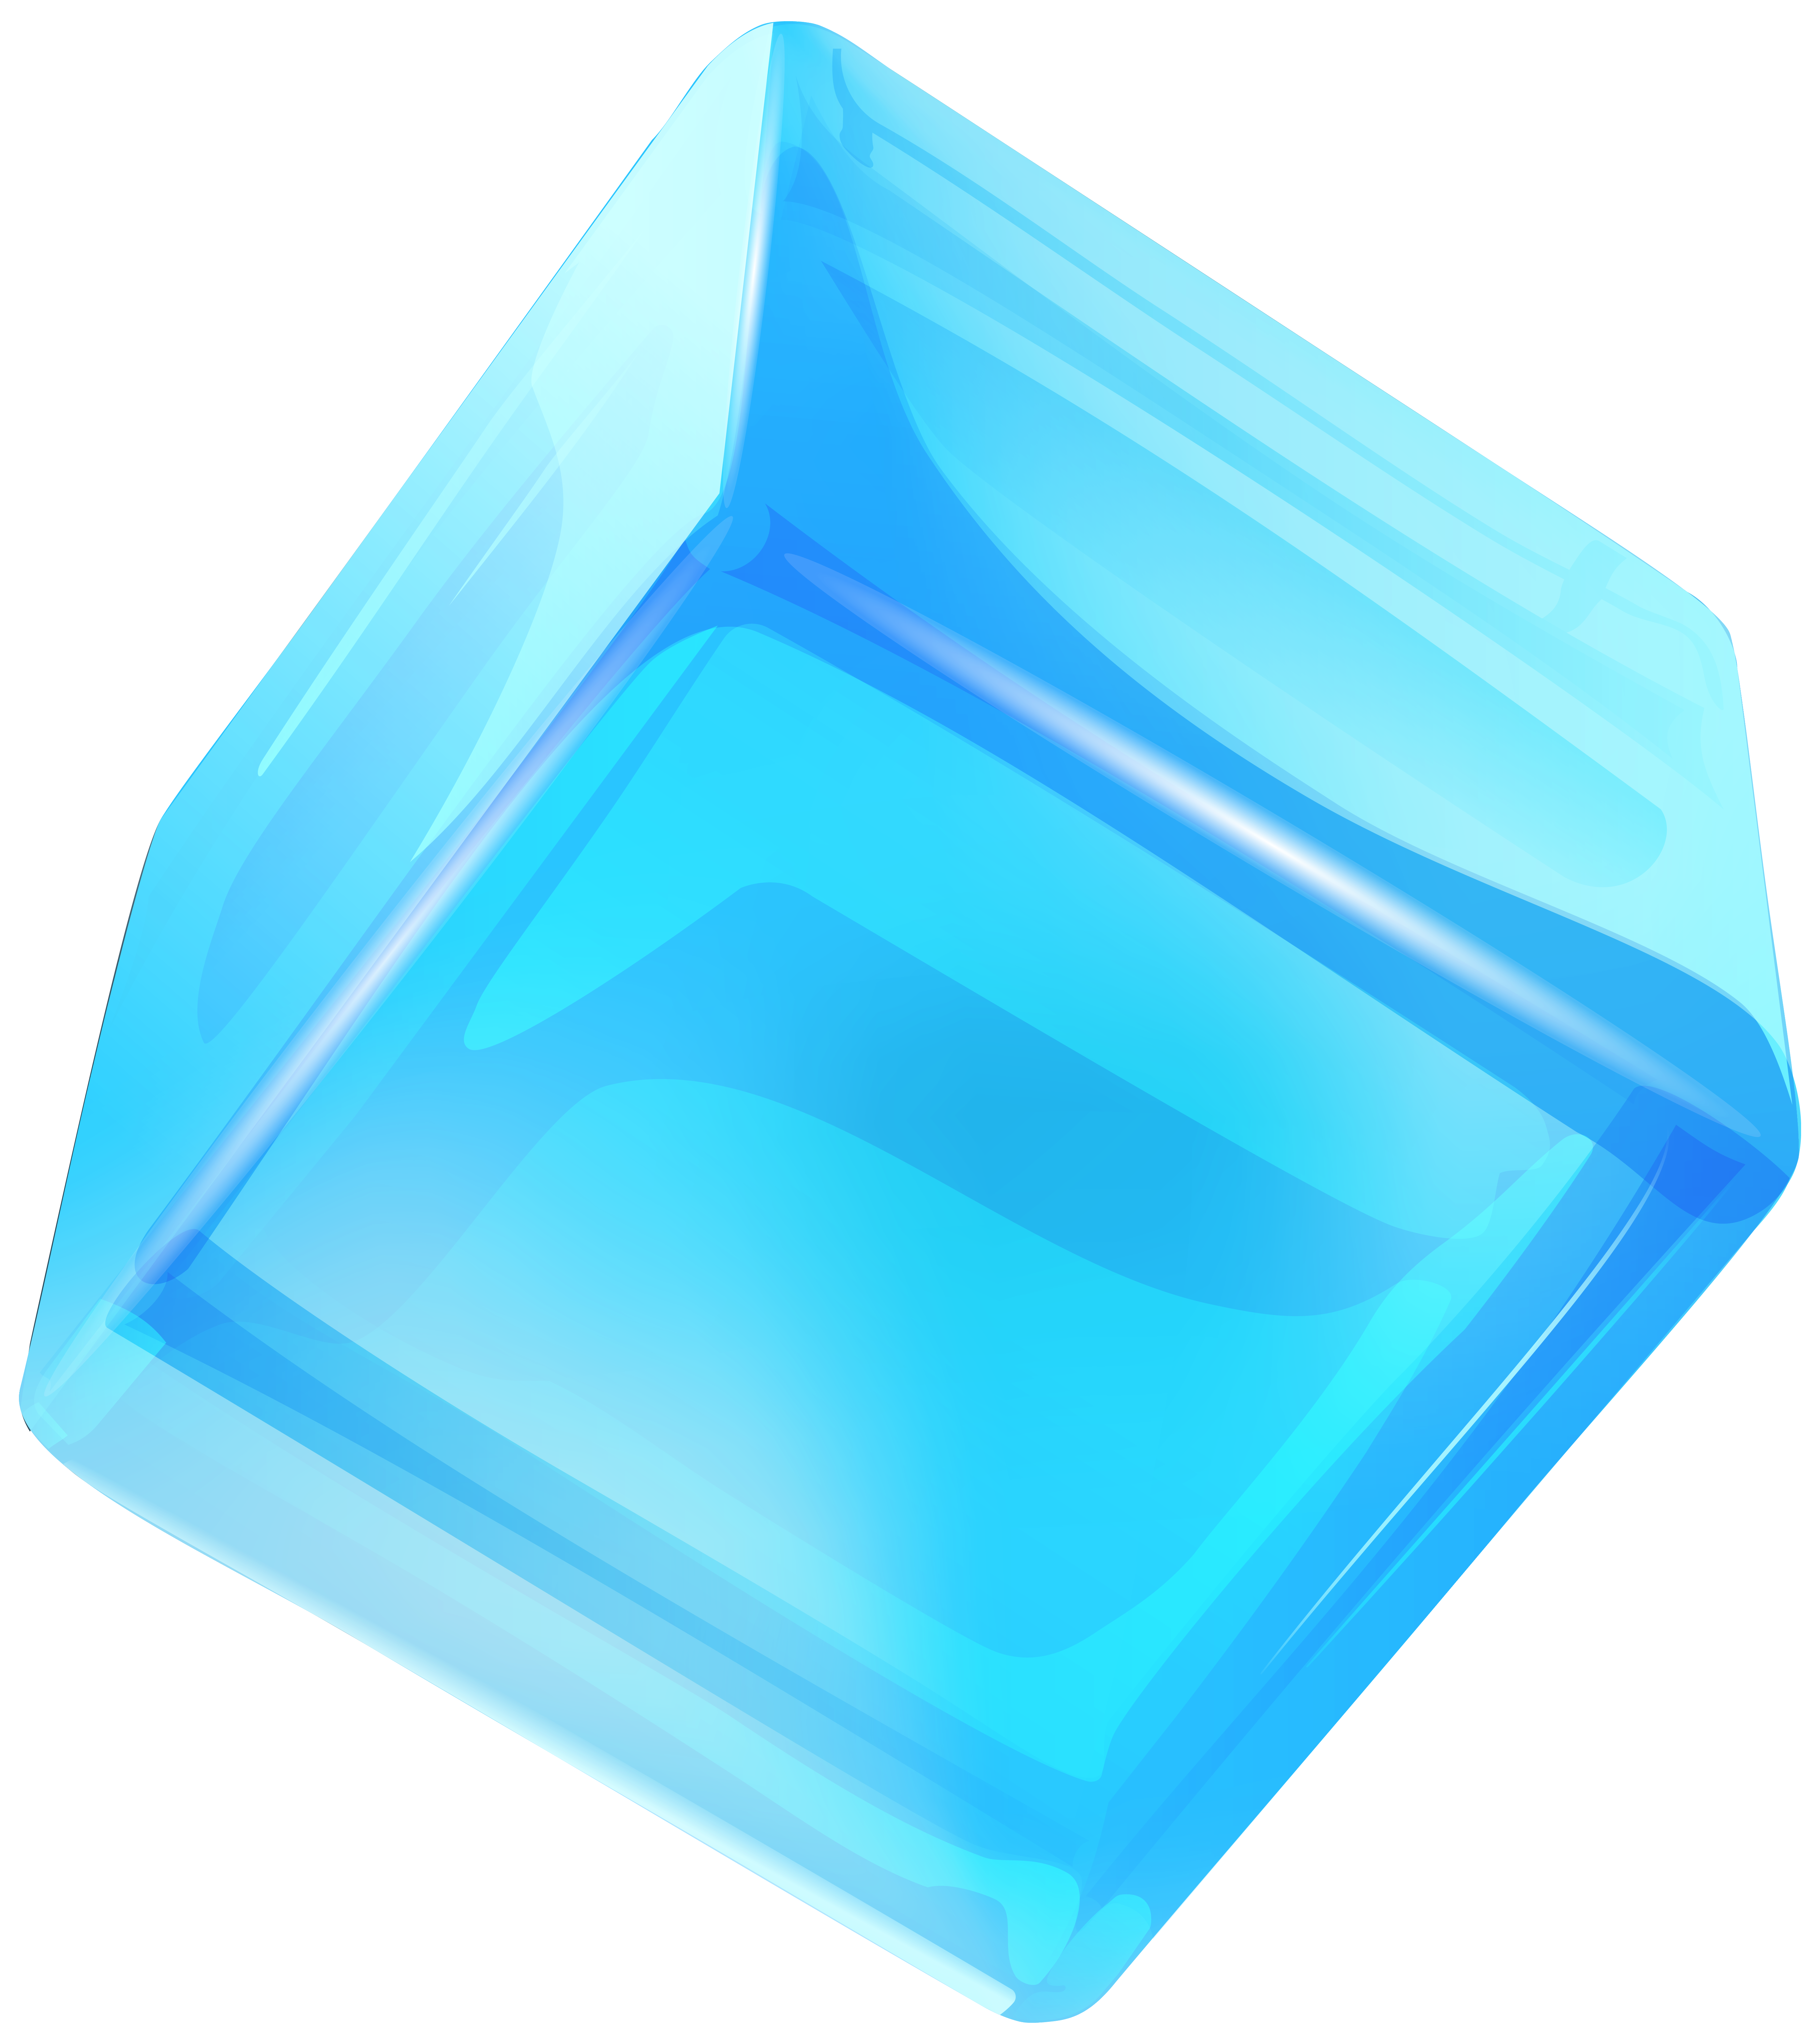 Blue Ice Cube PNG Clip Art.